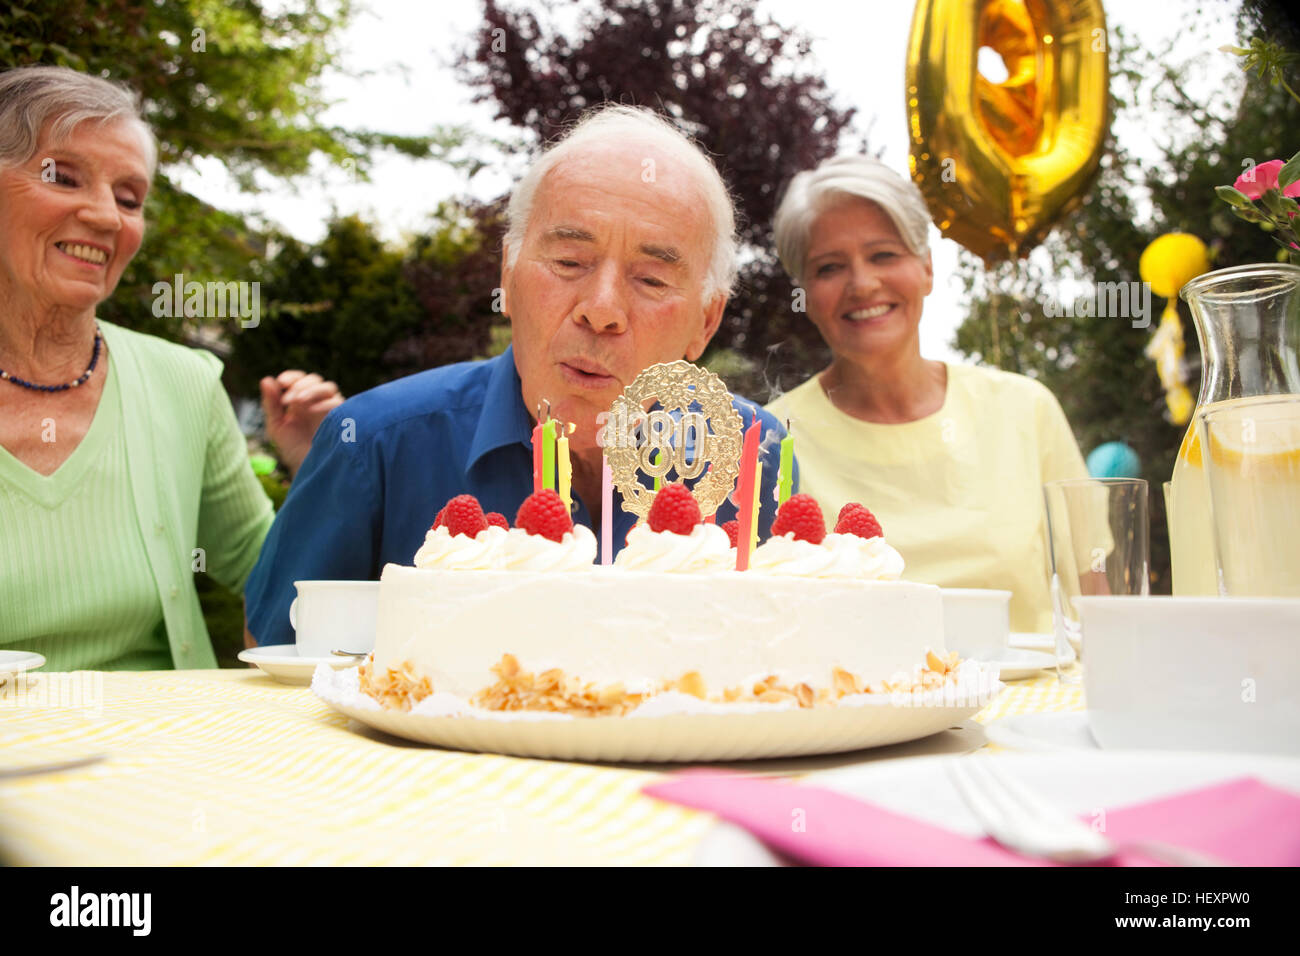 Senior Man Blowing Candle On 80th Birthday Cake